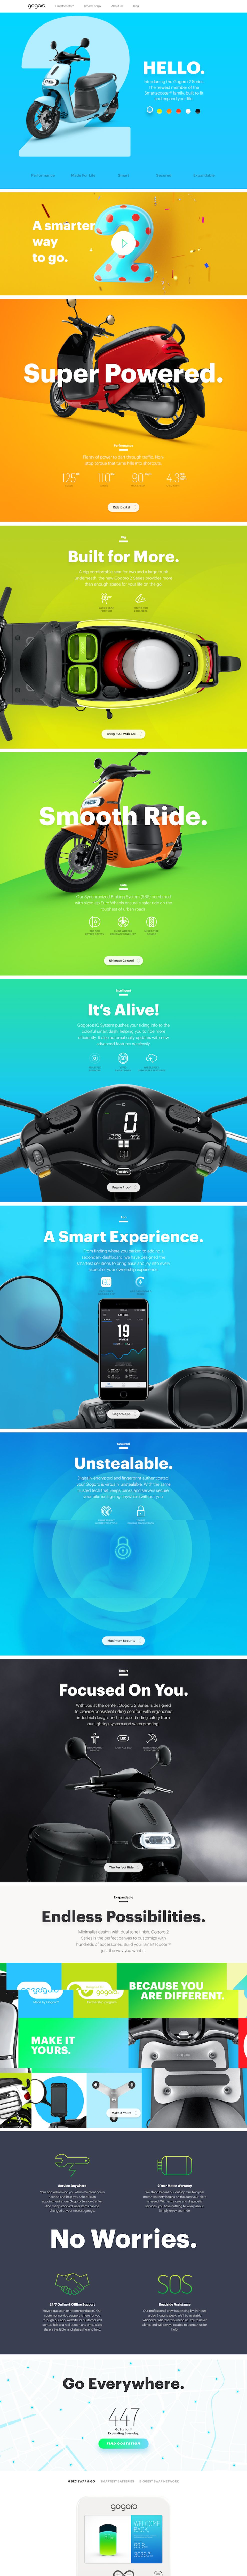 Gogoro Colorful Product Page